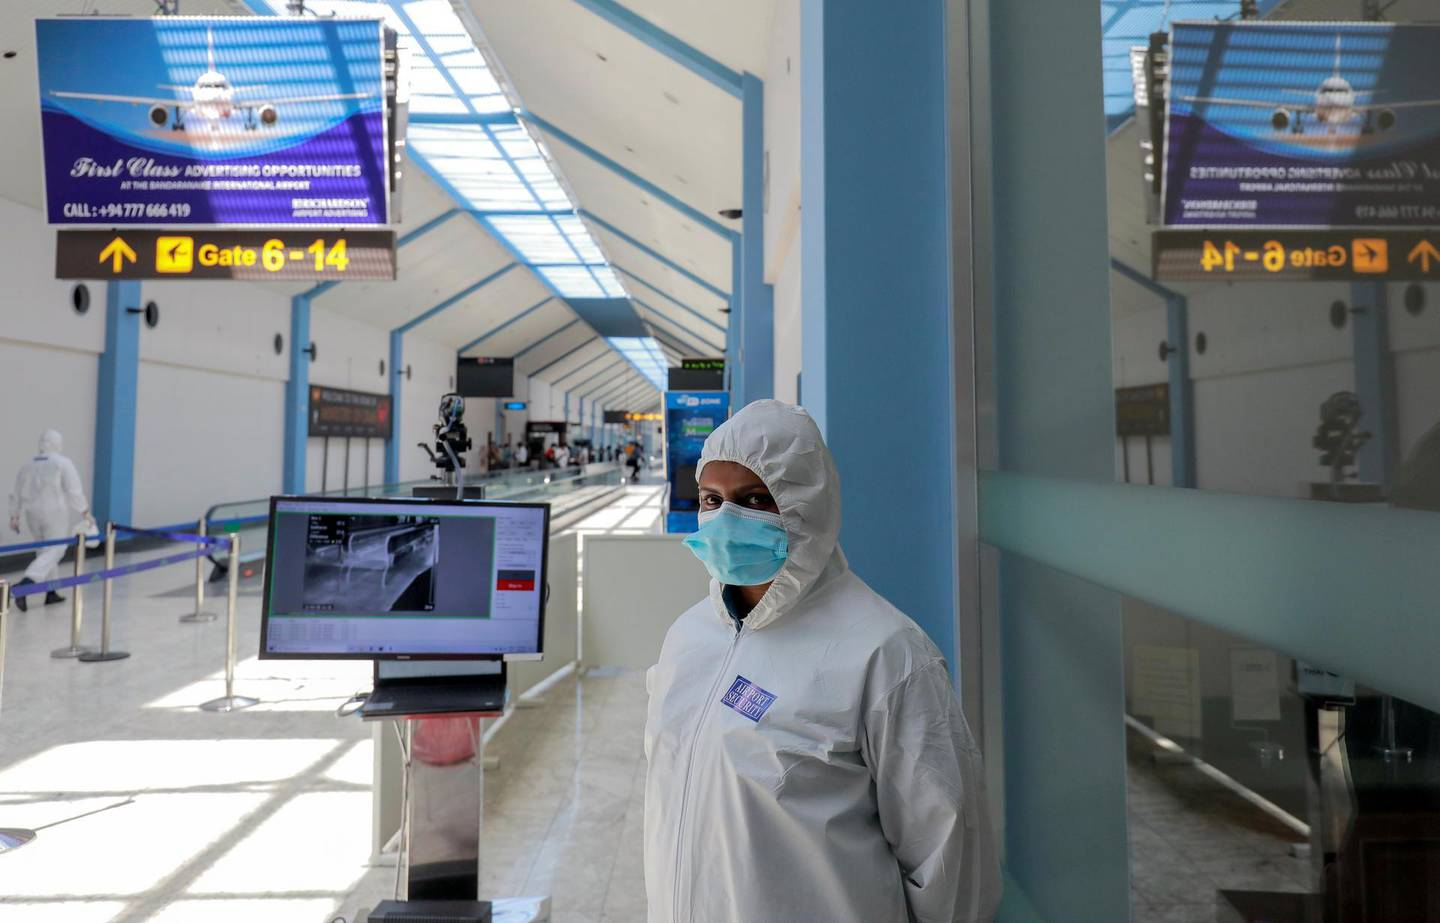 A security officer wearing protective gear stands next to passenger temperature scanning machine where she is on duty as Sri Lanka's government scheduled to reopen the country's airports for tourists from January 21, 2021, as they were closed since March 2020 due to spread of  coronavirus disease (COVID-19), at Bandaranaike International Airport in Katunayake, Sri Lanka January 20, 2021. REUTERS/Dinuka Liyanawatte